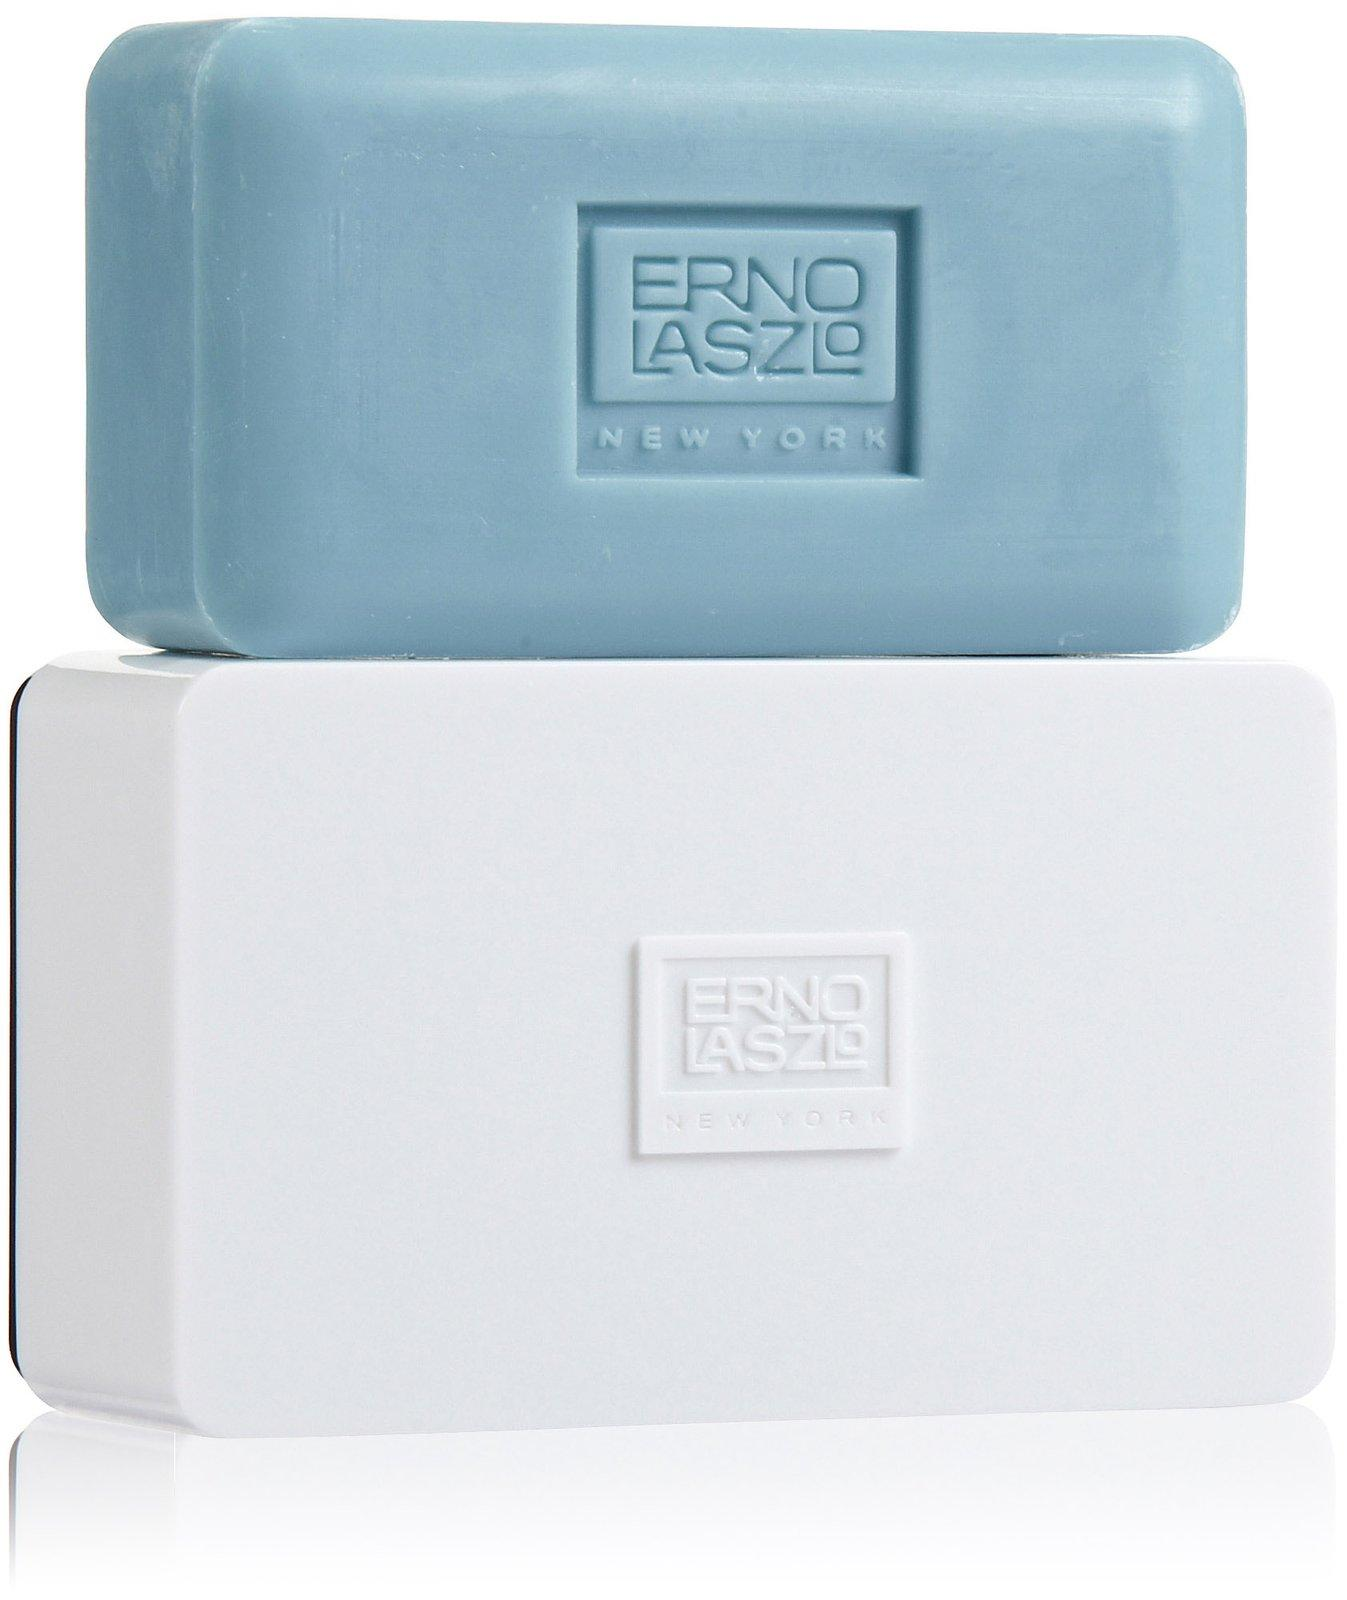 New Release Erno Laszlo launched New Oil Control Cleansing Bar